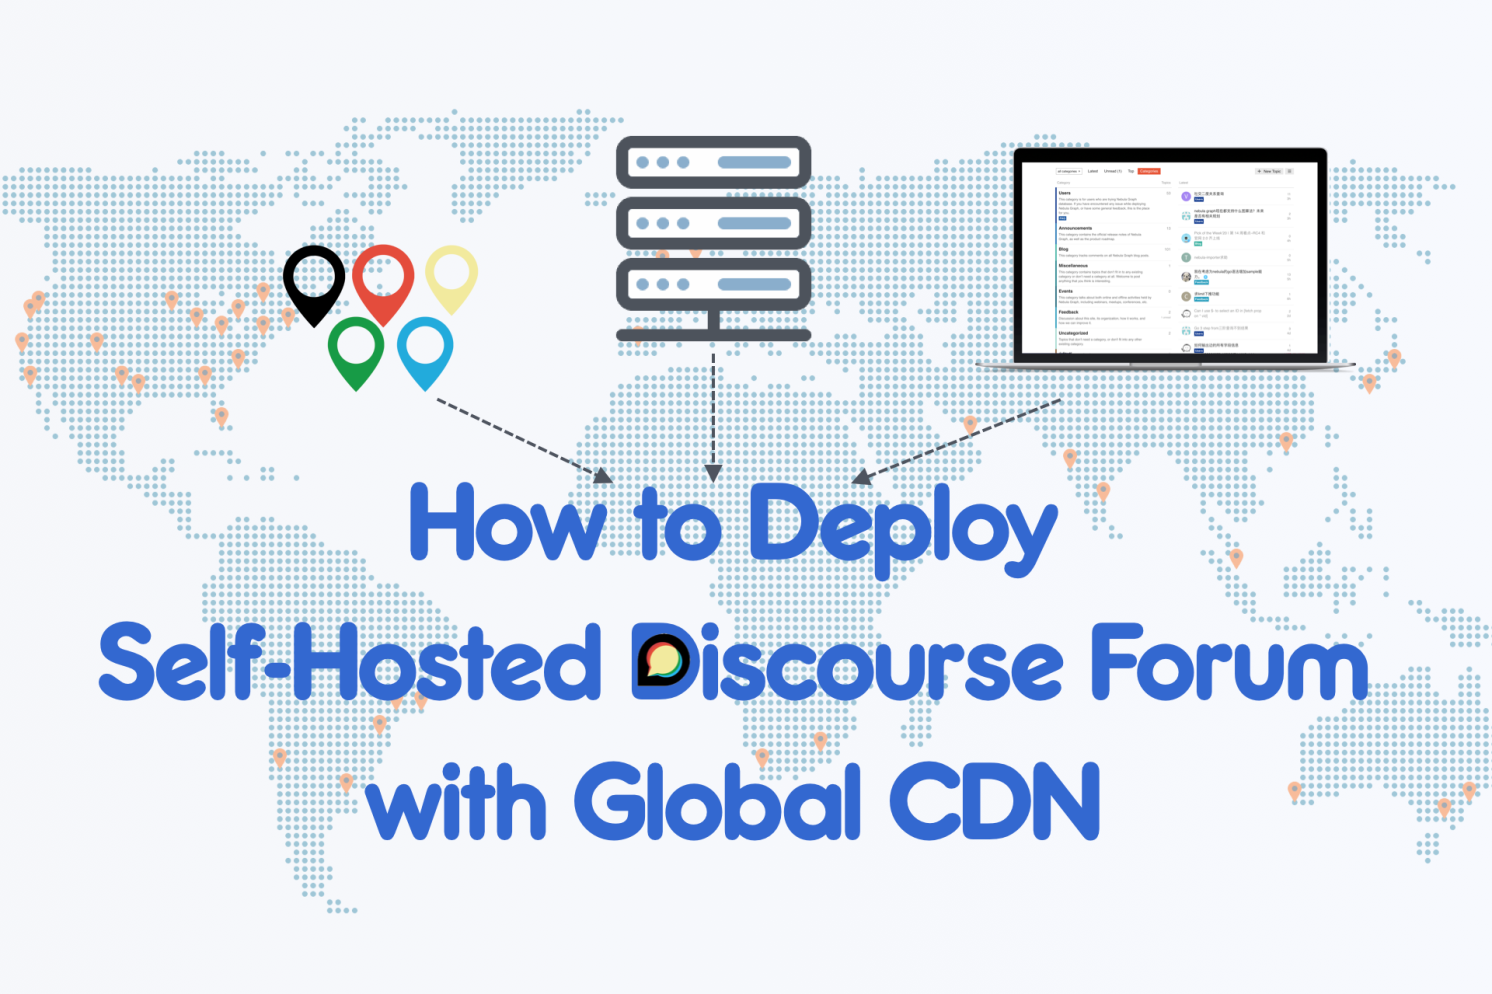 How to Deploy Self-Host Discourse Forum with Global CDN